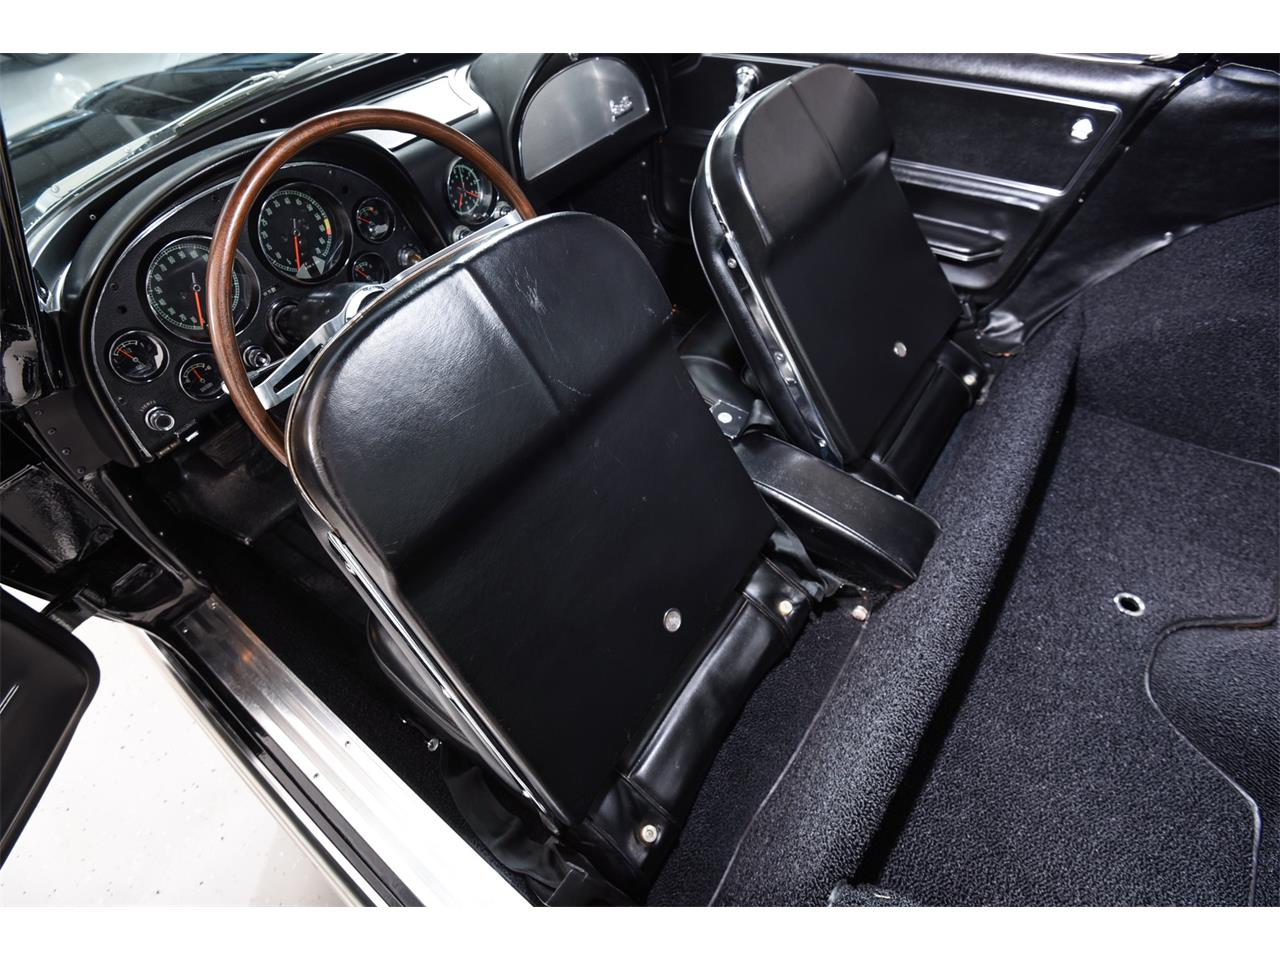 Large Picture of 1966 Chevrolet Corvette located in New York - $79,900.00 - Q1WK